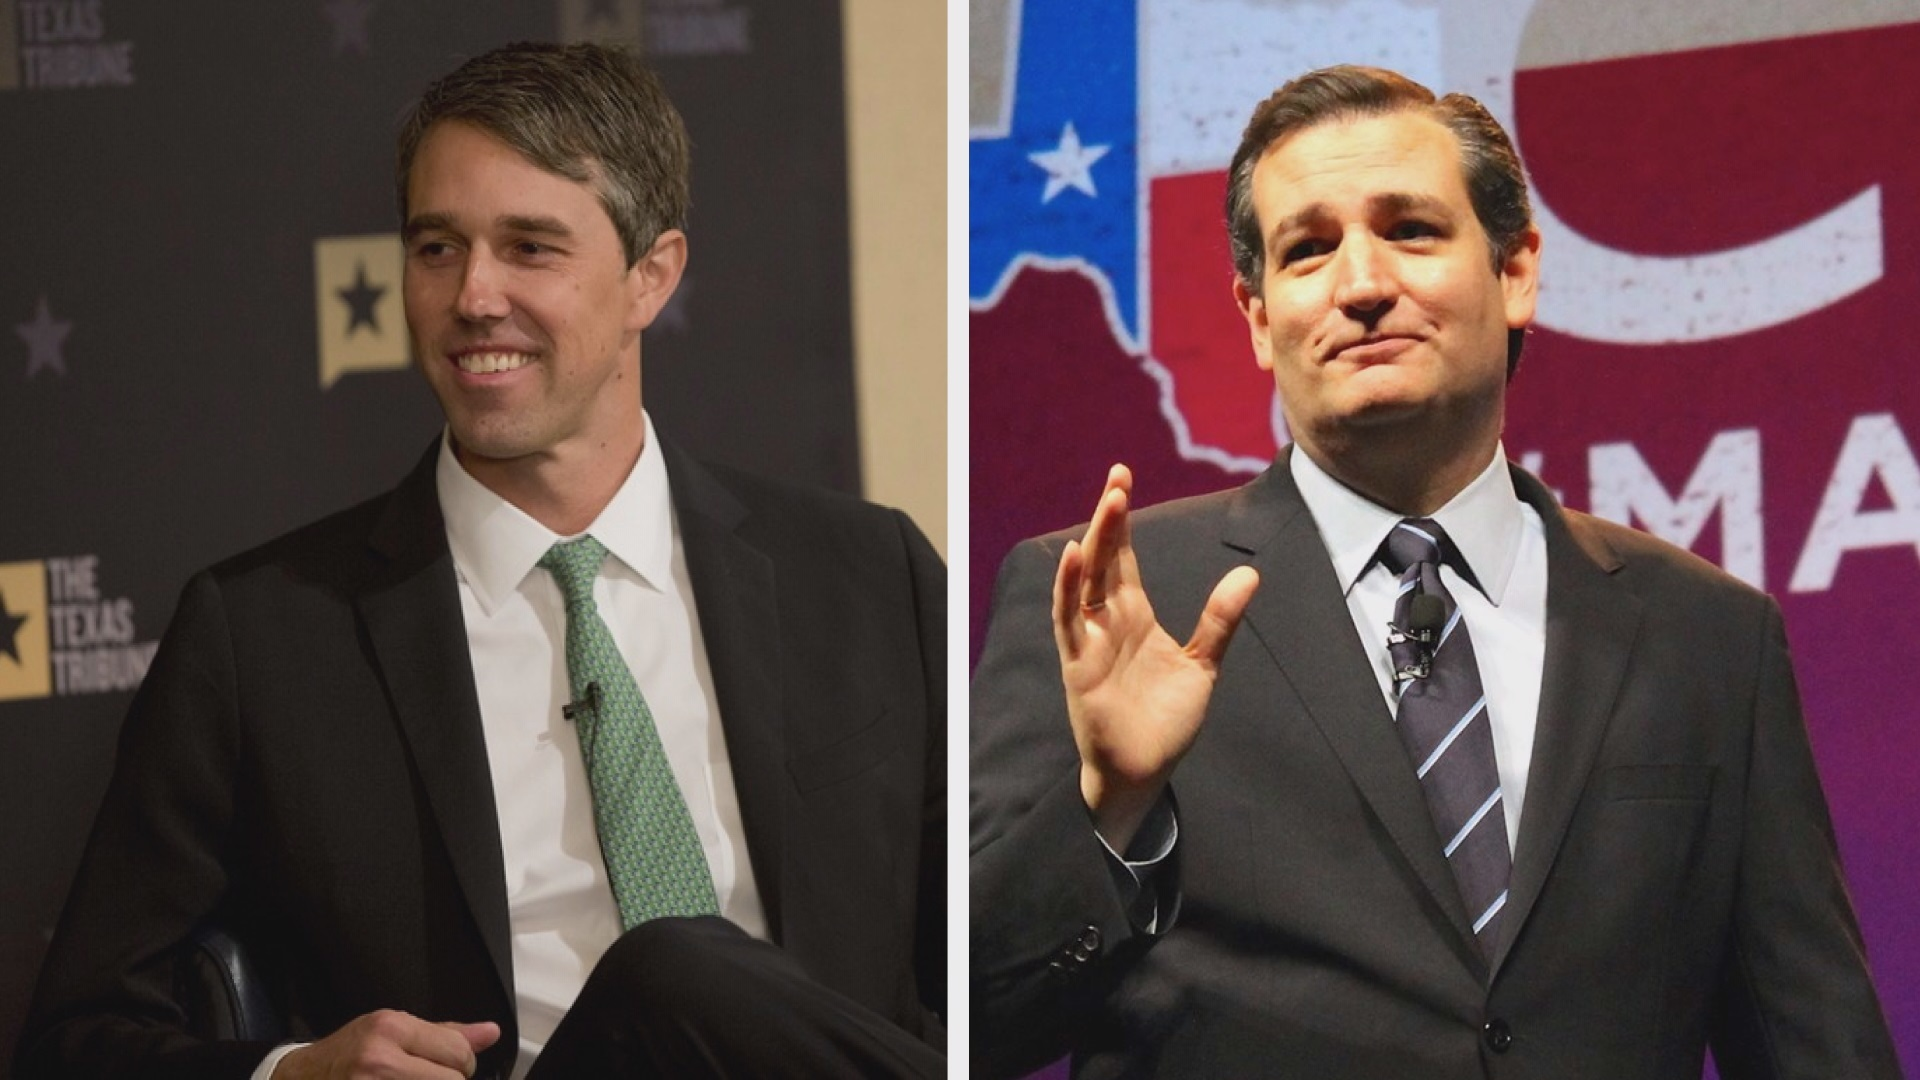 O_Rourke_Tops_Cruz_in_Fundraising_Again_0_20180712232126